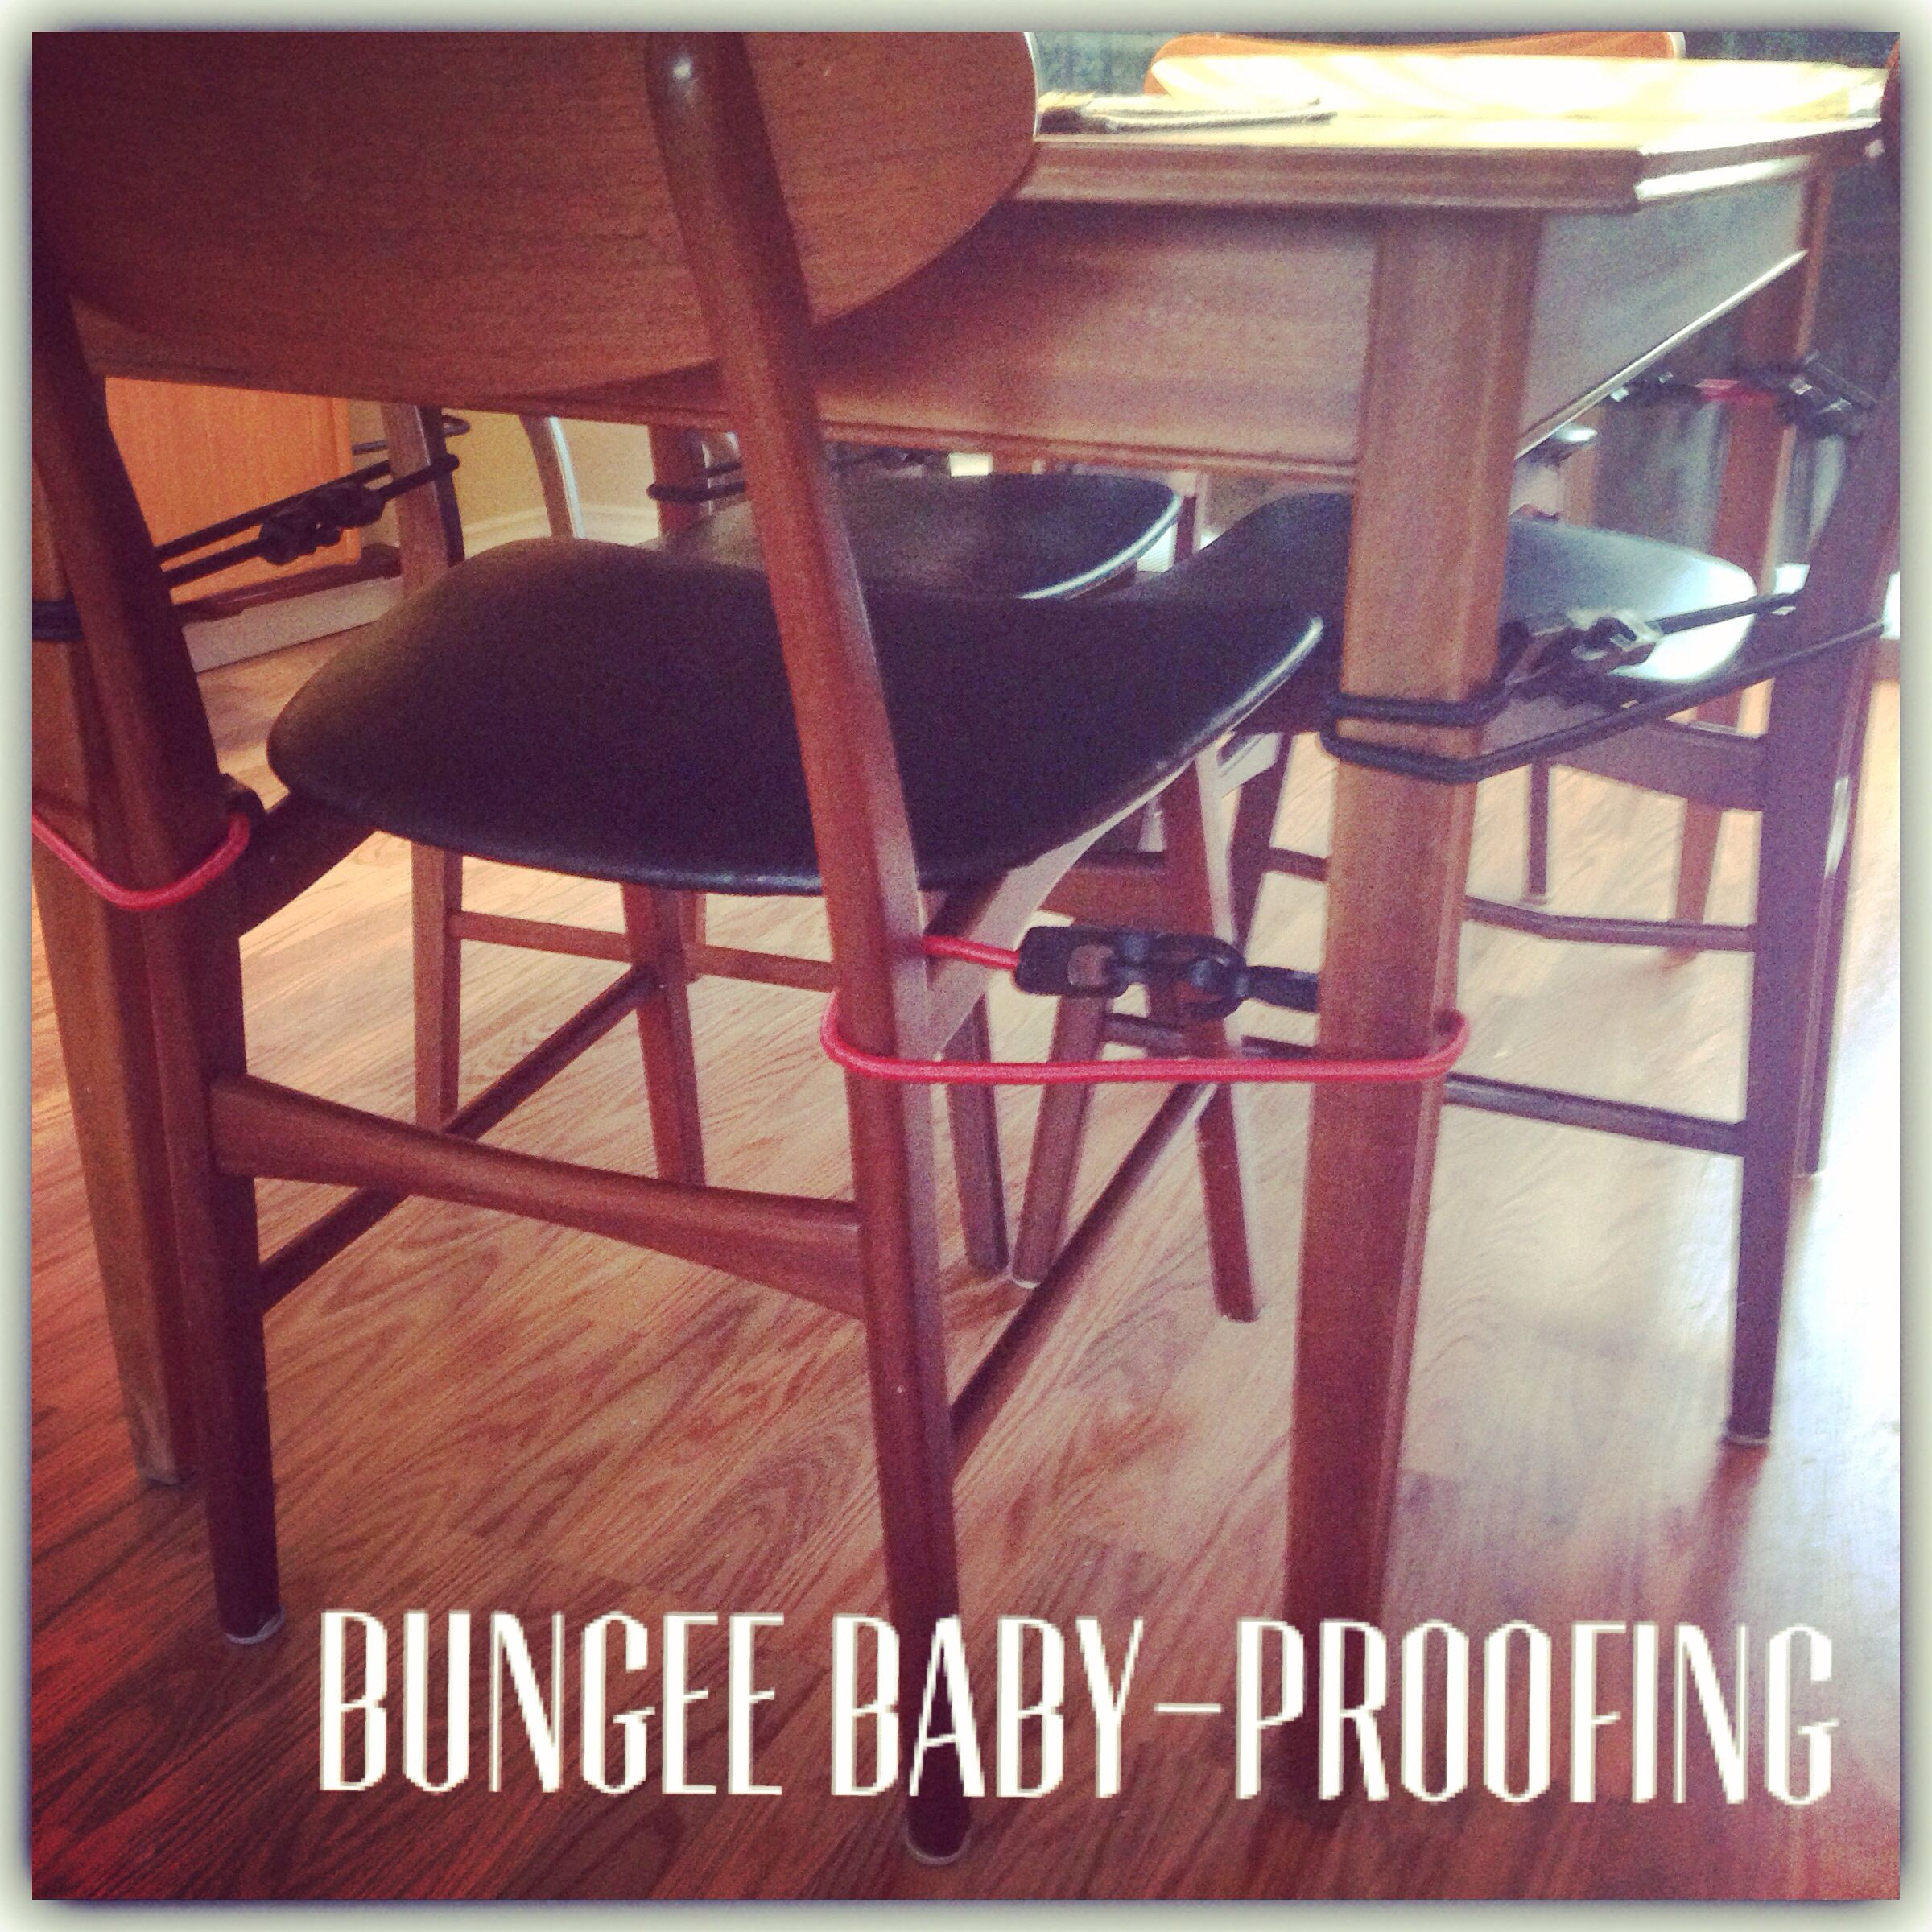 Bungee Baby Proofing Tired of your toddler climbing up on the